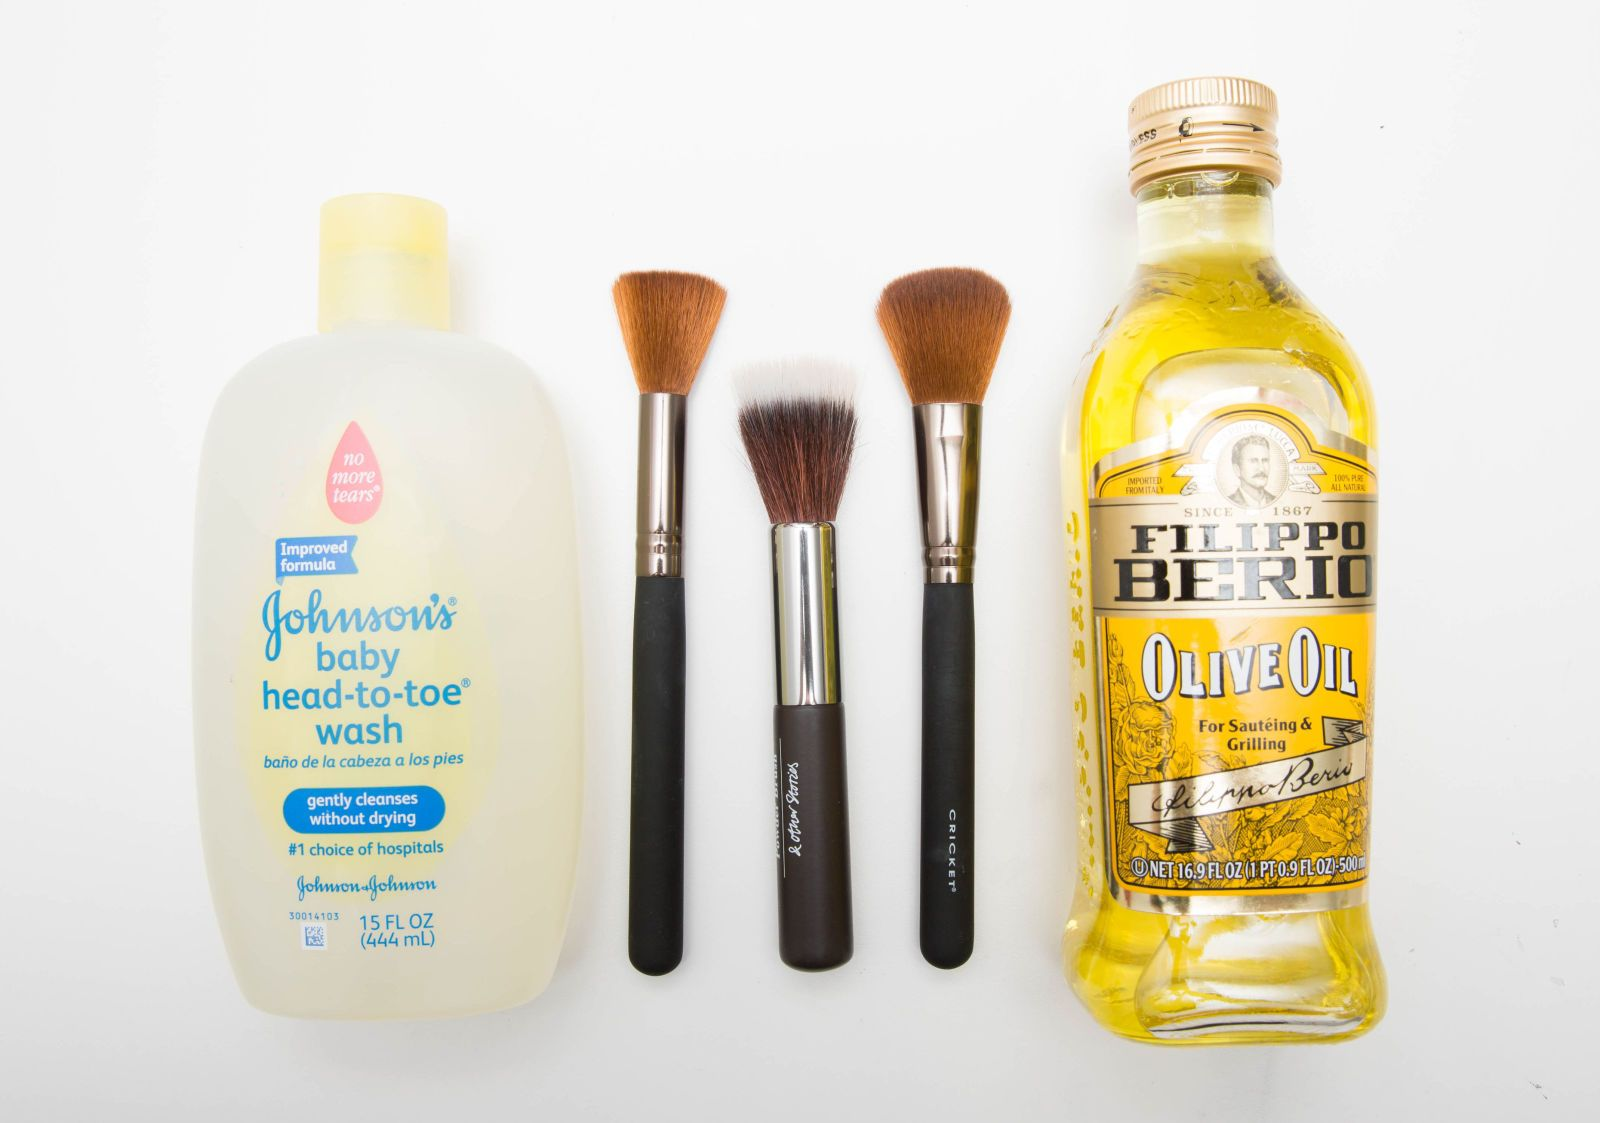 Makeup brushes are expensive, so make sure to wash and condition them with baby shampoo (or dish detergent) and olive oil regularly.